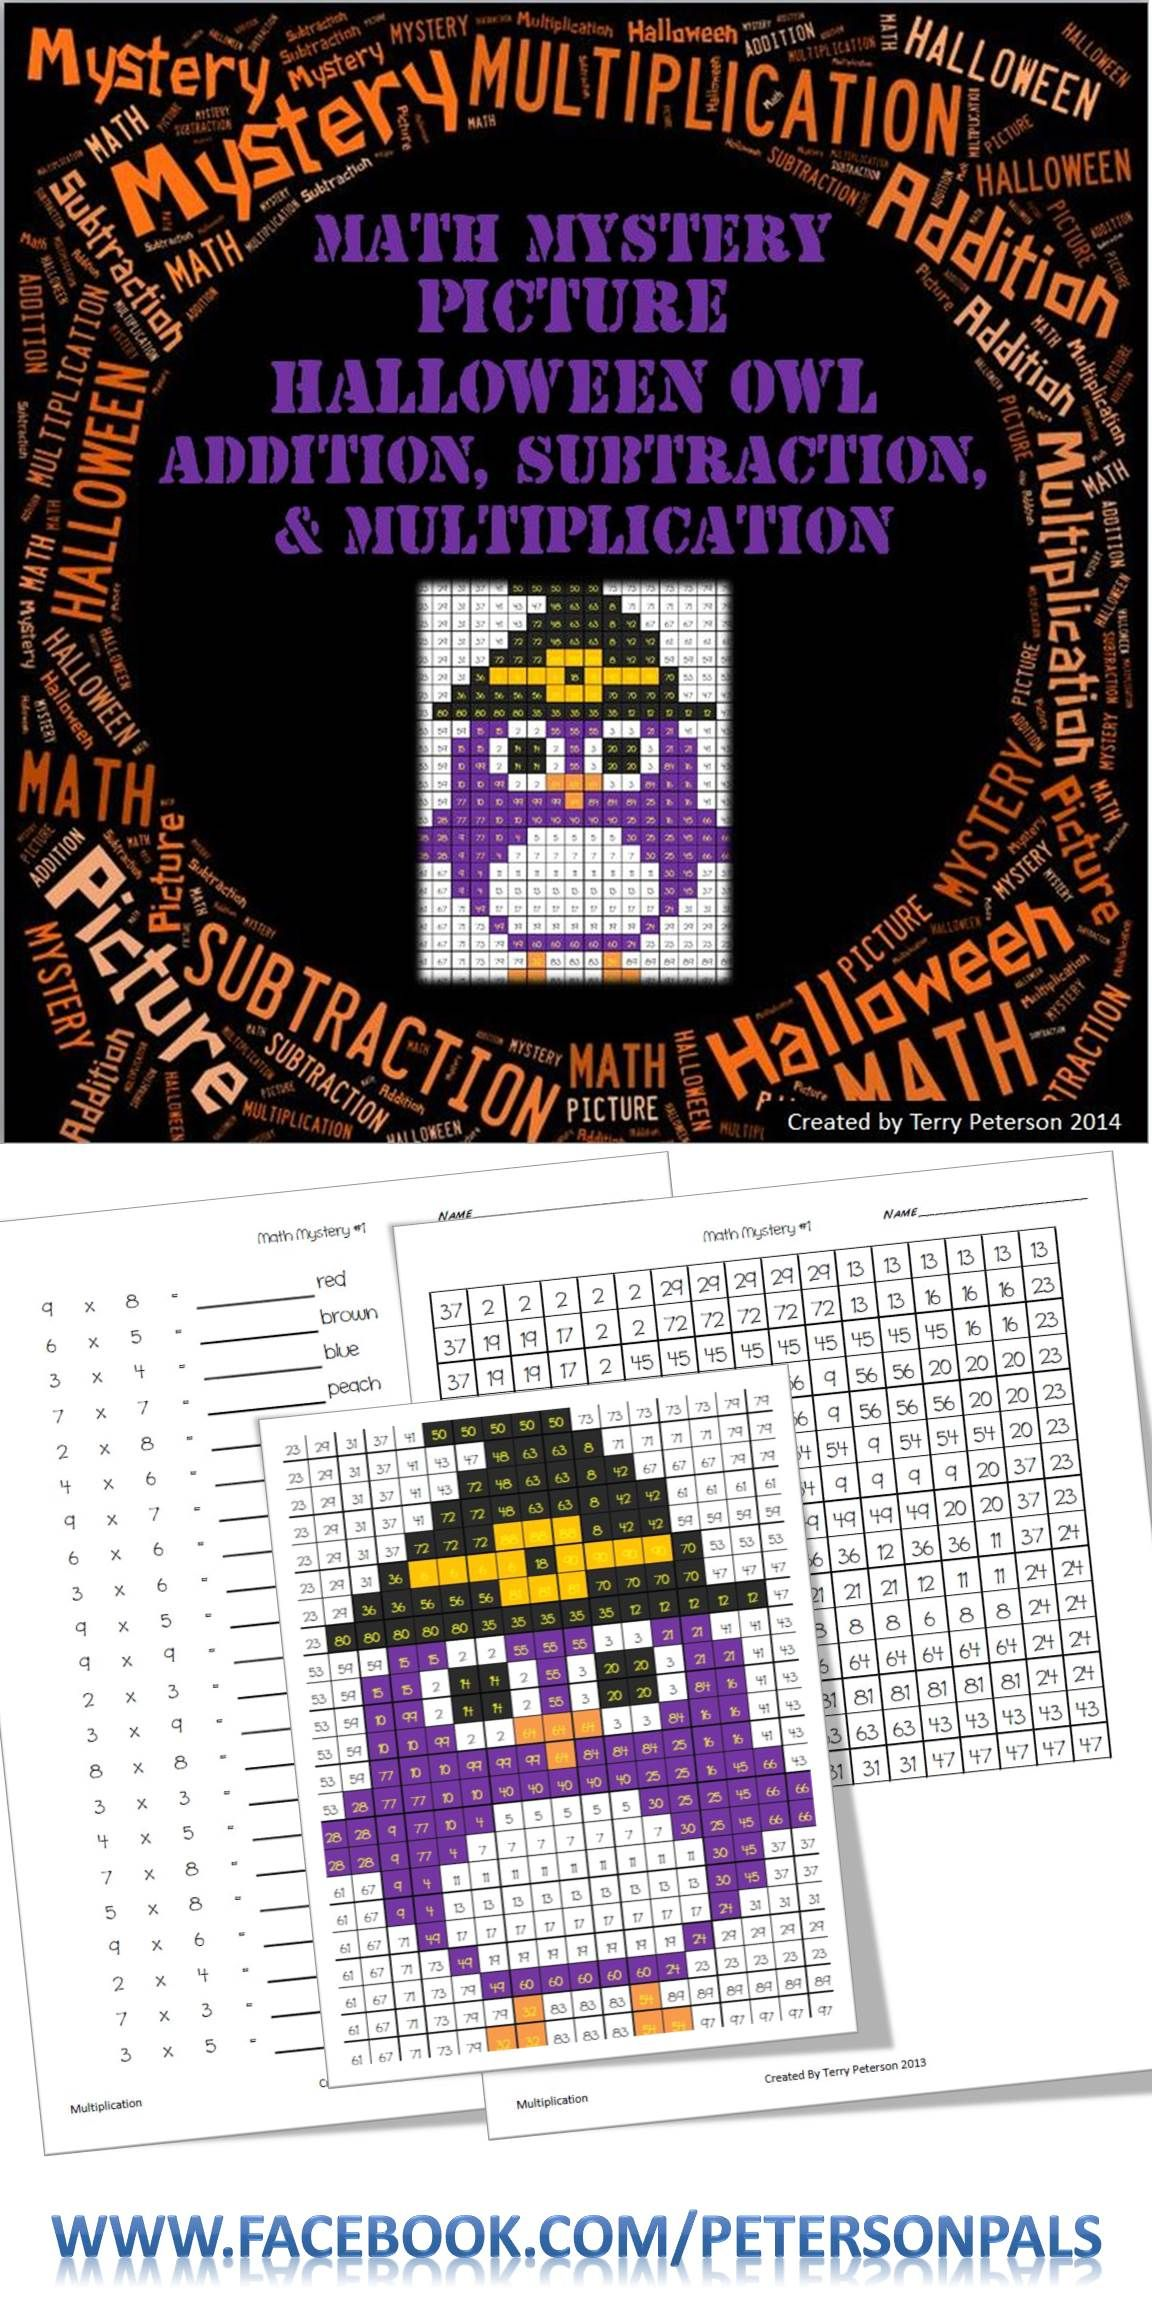 Math Mystery Picture Halloween Owl Addition Subtraction